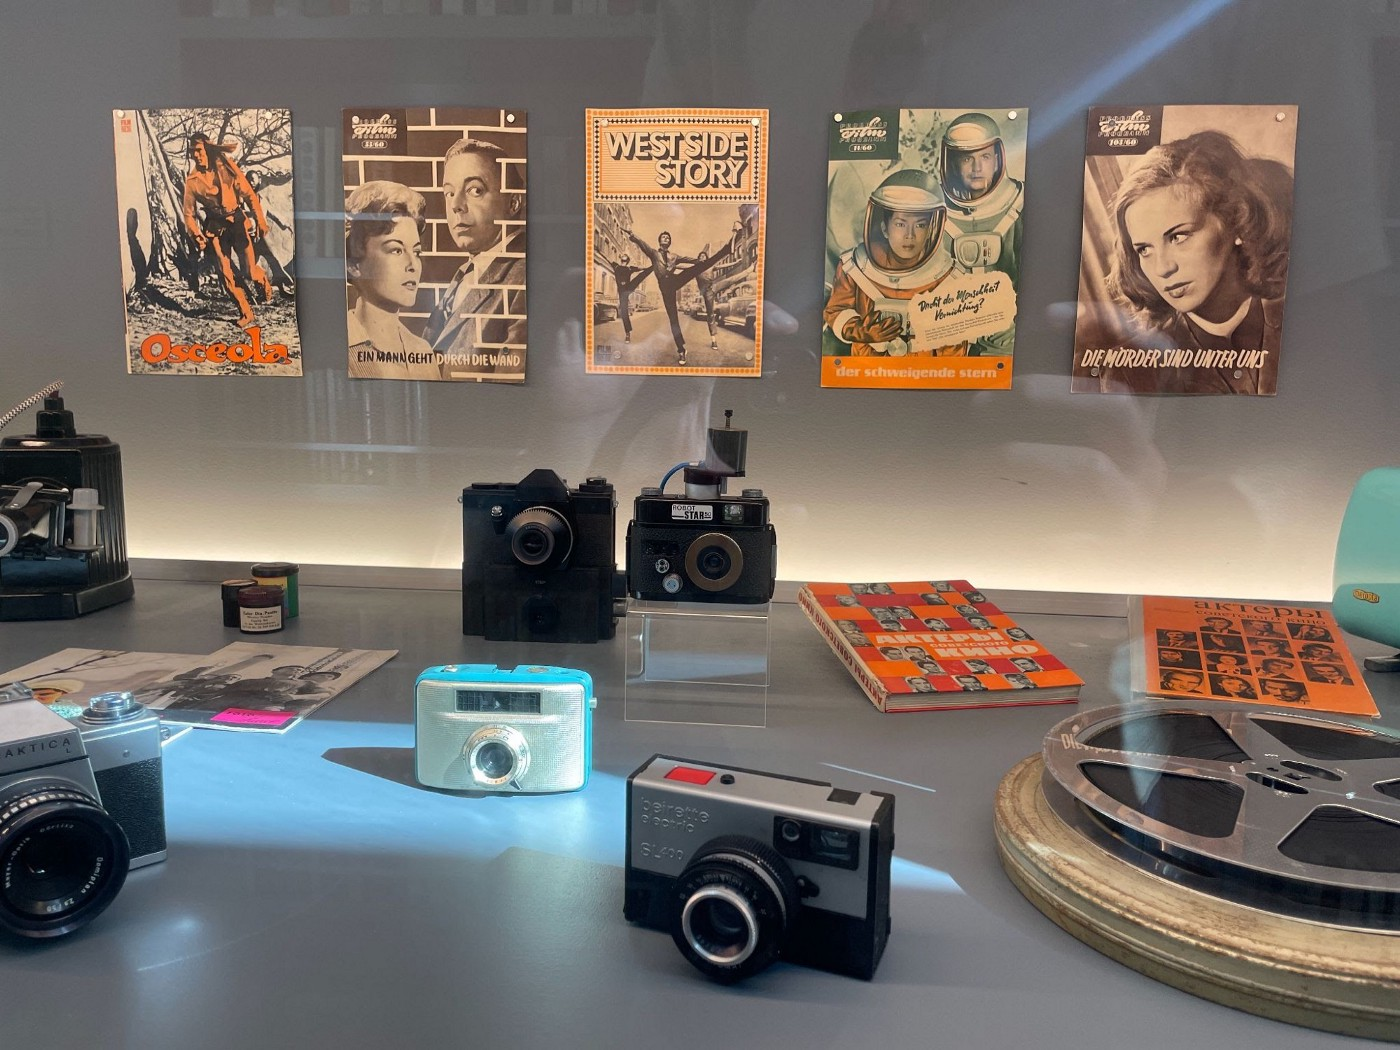 A display featuring a collection of cameras, film, and Polish zine-like leaflets from the Cold War era.